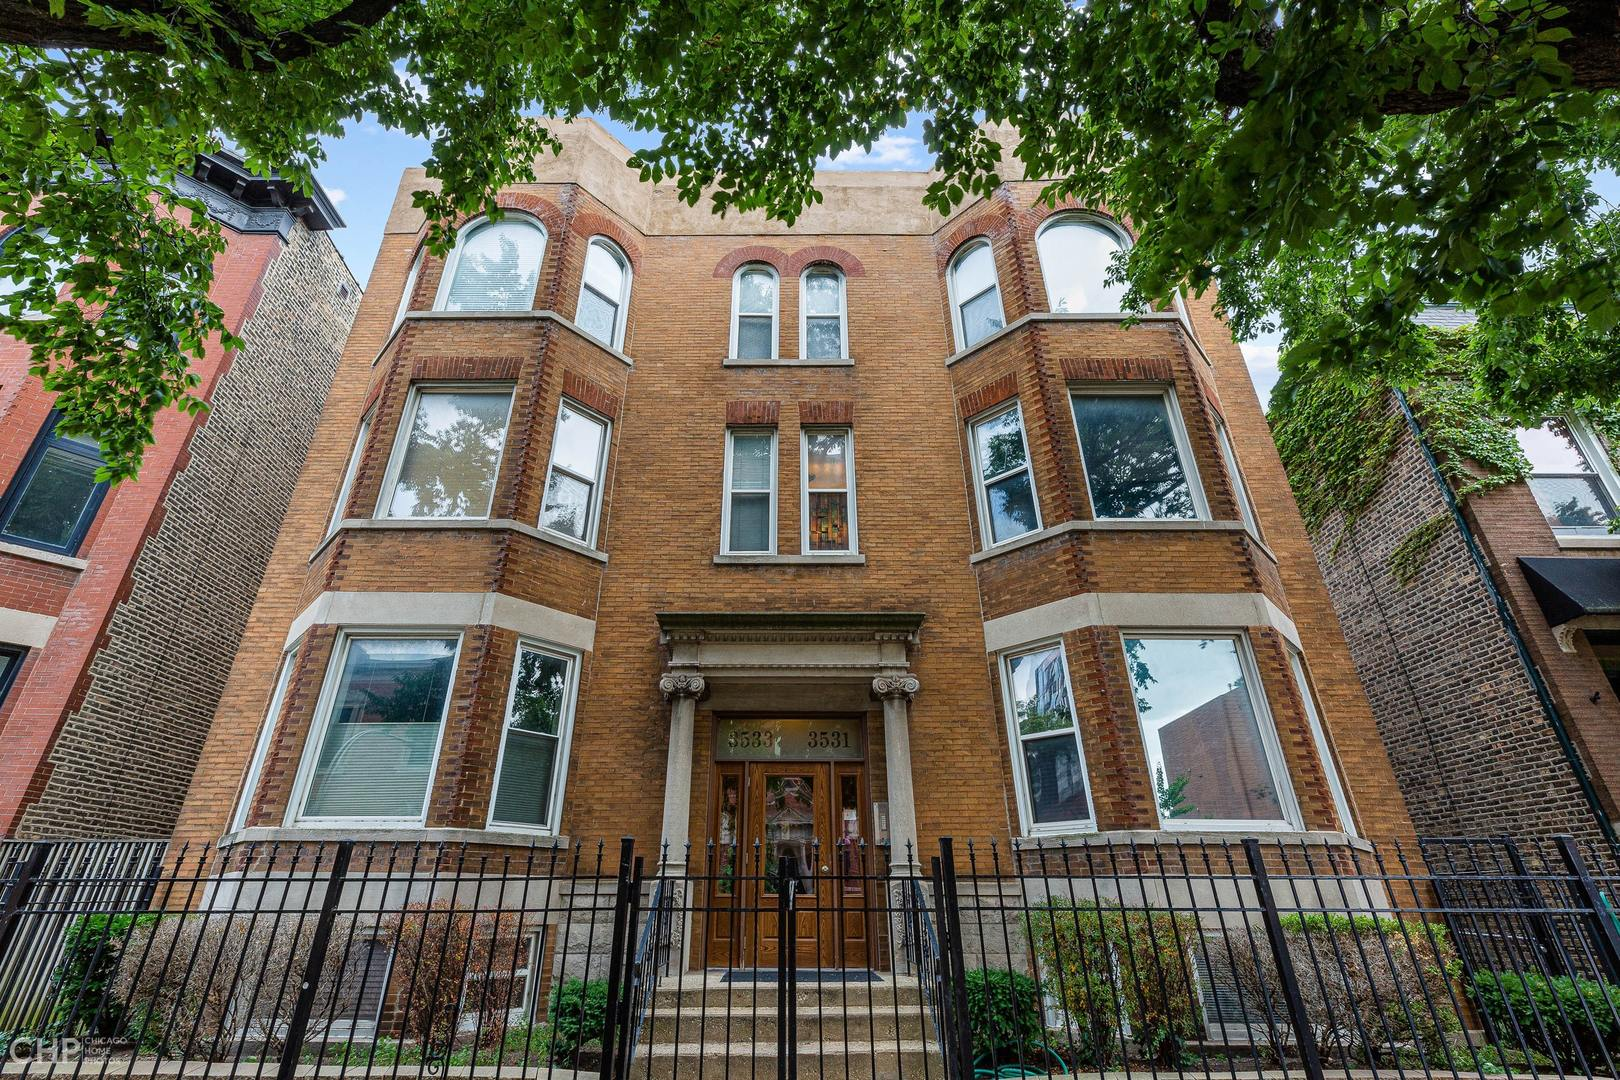 Don't miss this opportunity in the heart of Wrigleyville steps from Wrigley Field to own a large condo price to sell. This large 2 bedroom or turn back to a 3-bedroom home with 2 and 1/2 baths duplex is an opportunity waiting for you. This home has 2 family rooms and separate dining room, exposed brick and tall ceilings providing natural light. Both bedrooms are good size and have ample closet space. The kitchen has white wood cabinets and stainless-steel appliances. The kitchen also has a walk-in pantry and is steps away from your deck to grill. The family room in the lower level is currently being used as a bedroom however the space lends itself to be another large family room area.  This has a good size laundry closet with full size washer and dryer. Included in the price is a tandem parking space allowing 3 cars to park comfortably.    This location cannot be beat. Short walk to Starbucks, Whole Foods, and Lake Shore Drive. Another 10-minute walk to all the shops and restaurants at South Corridor and all the newer restaurants around Wrigley, like; Swift & Sons Tavern, Big Star, The Roost, Do-Rite Donuts, all quintessential Chicago eateries, and much, much more.  Call Steve today to set up your showing.